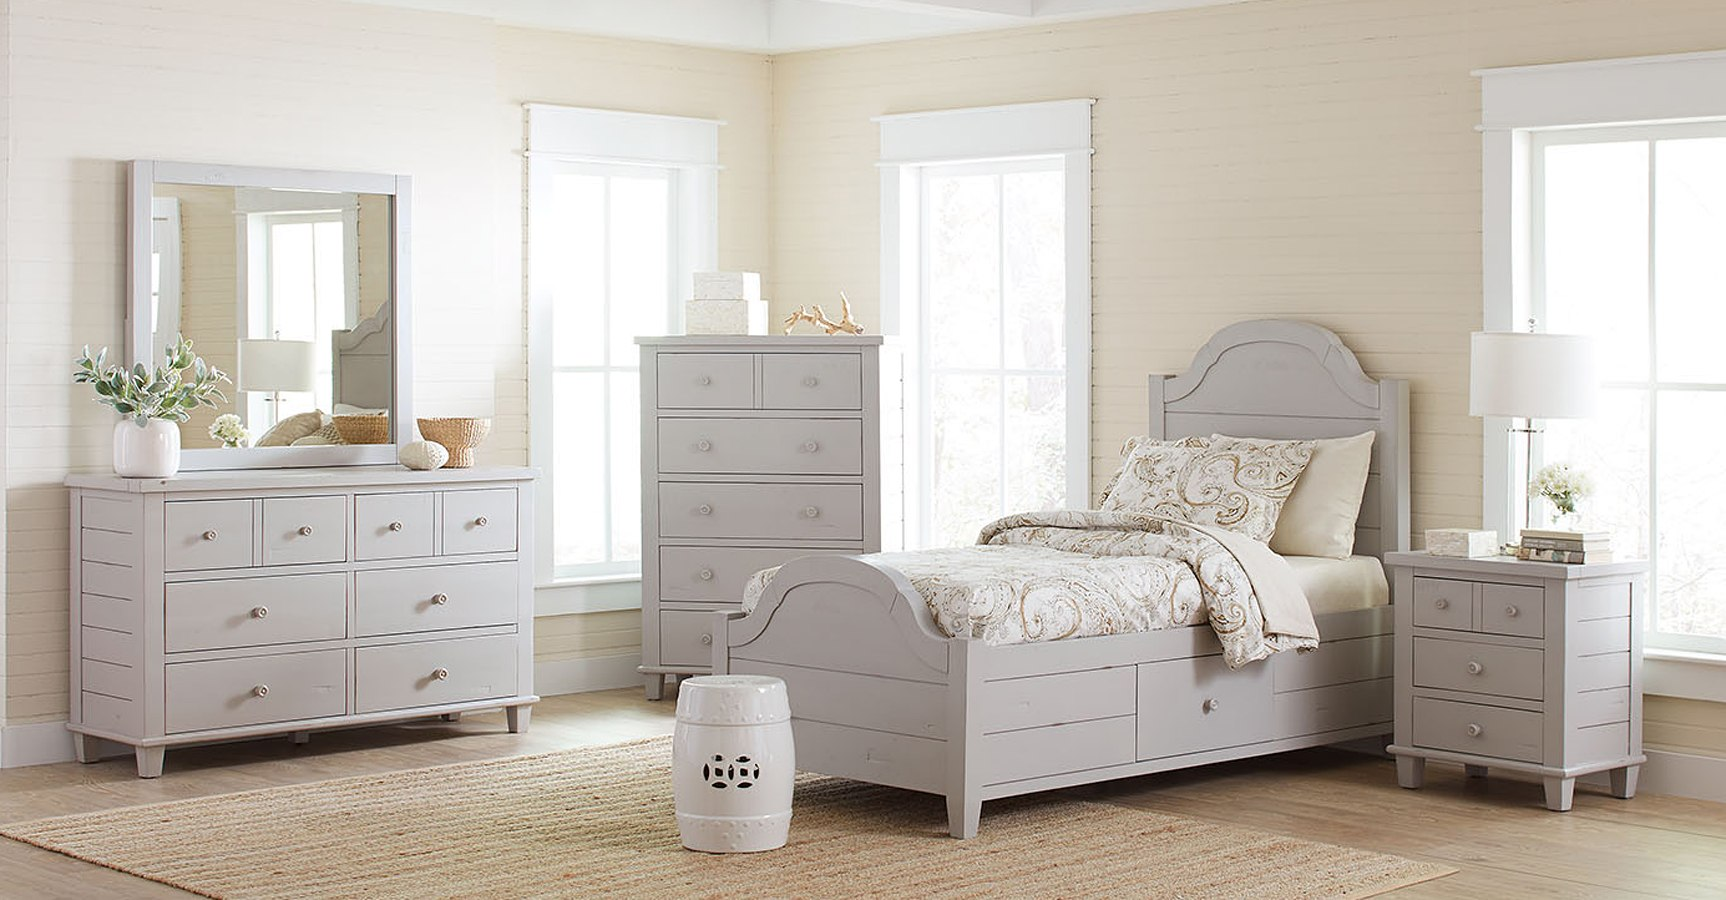 Chesapeake Youth Storage Bedroom Set Dove Grey By Jofran